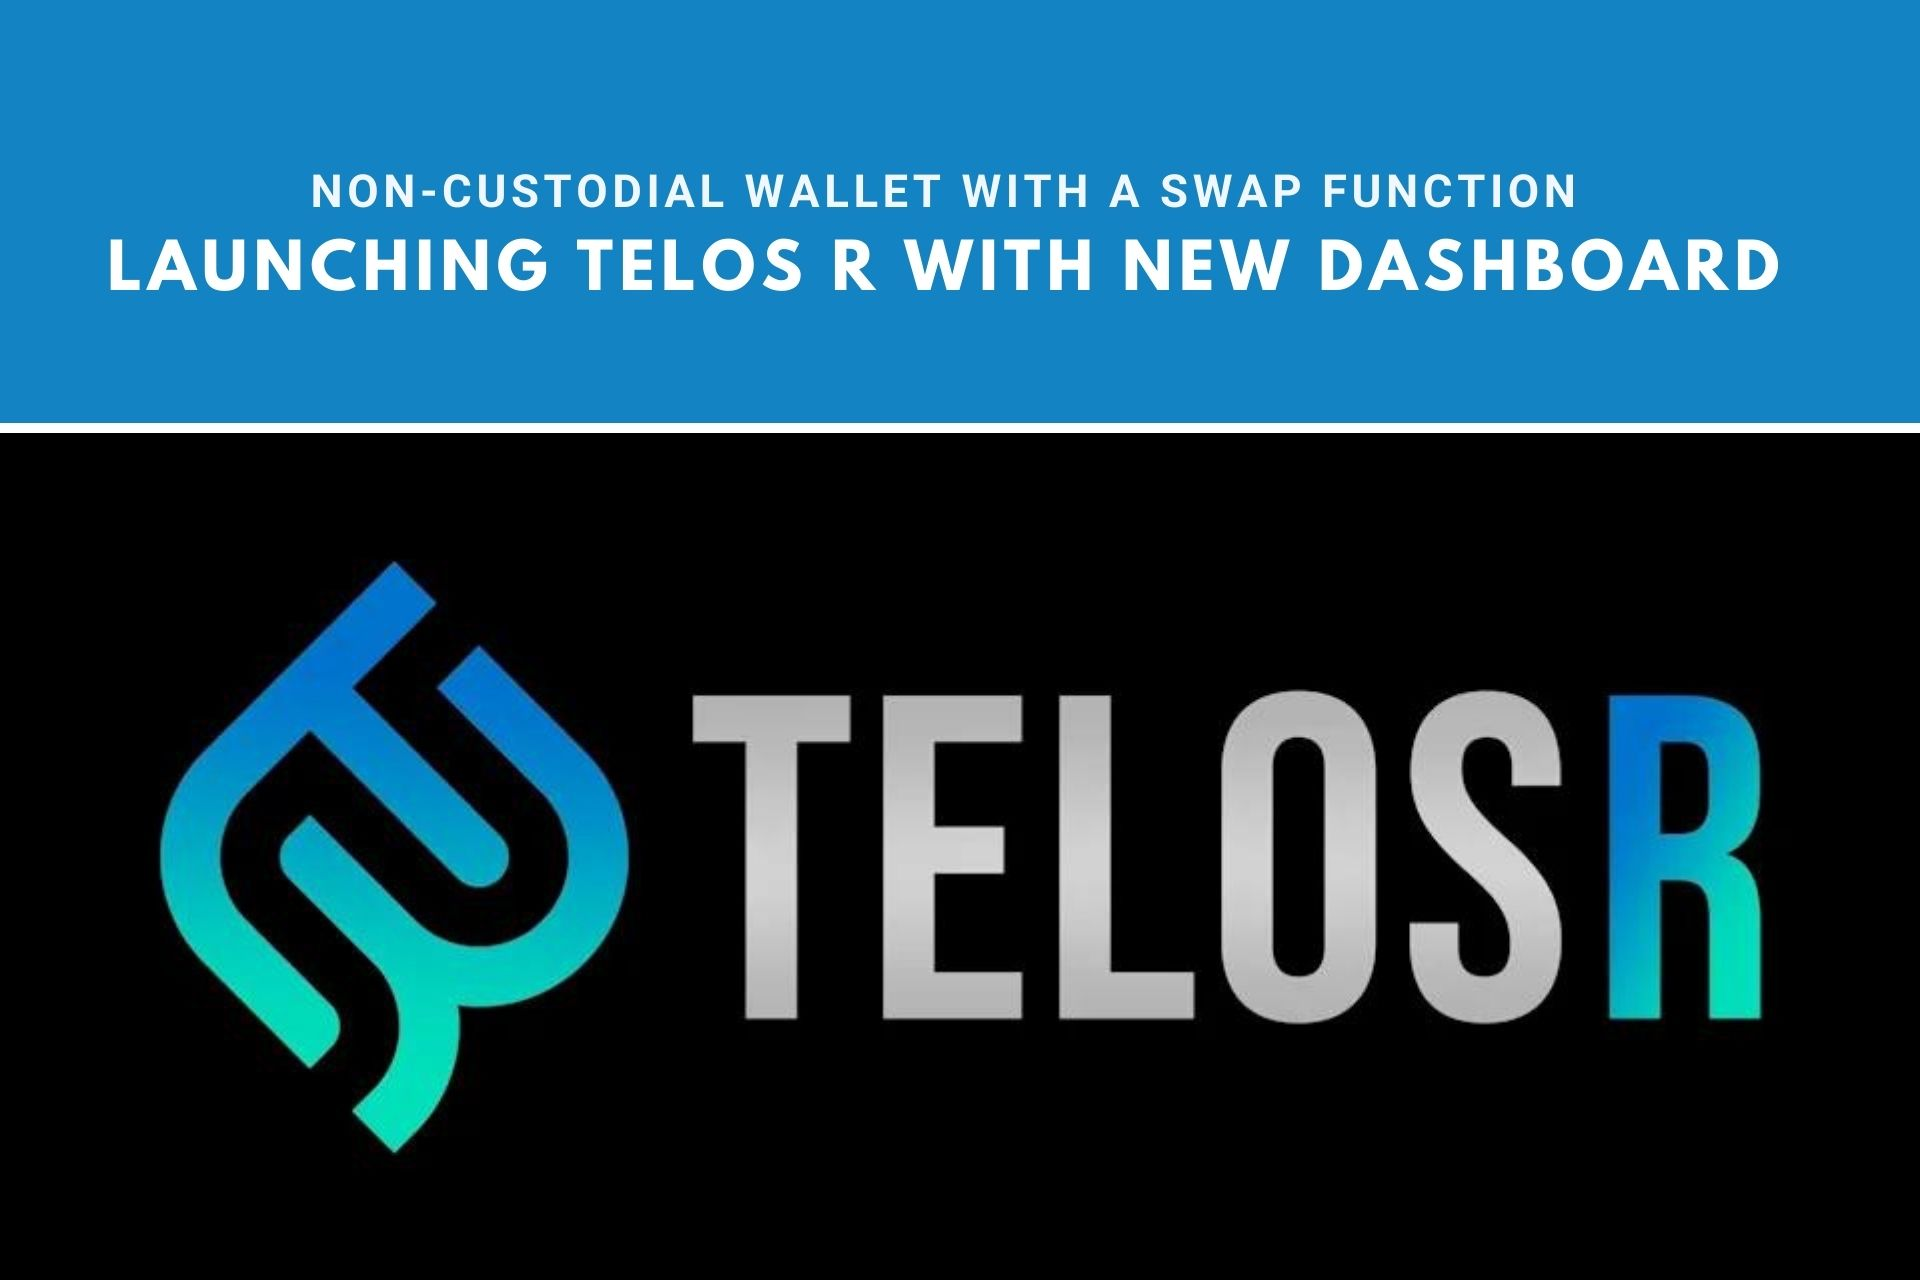 Teloscoin Launching TELOS R With New Dashboard and Non-Custodial Wallet With a Swap Function